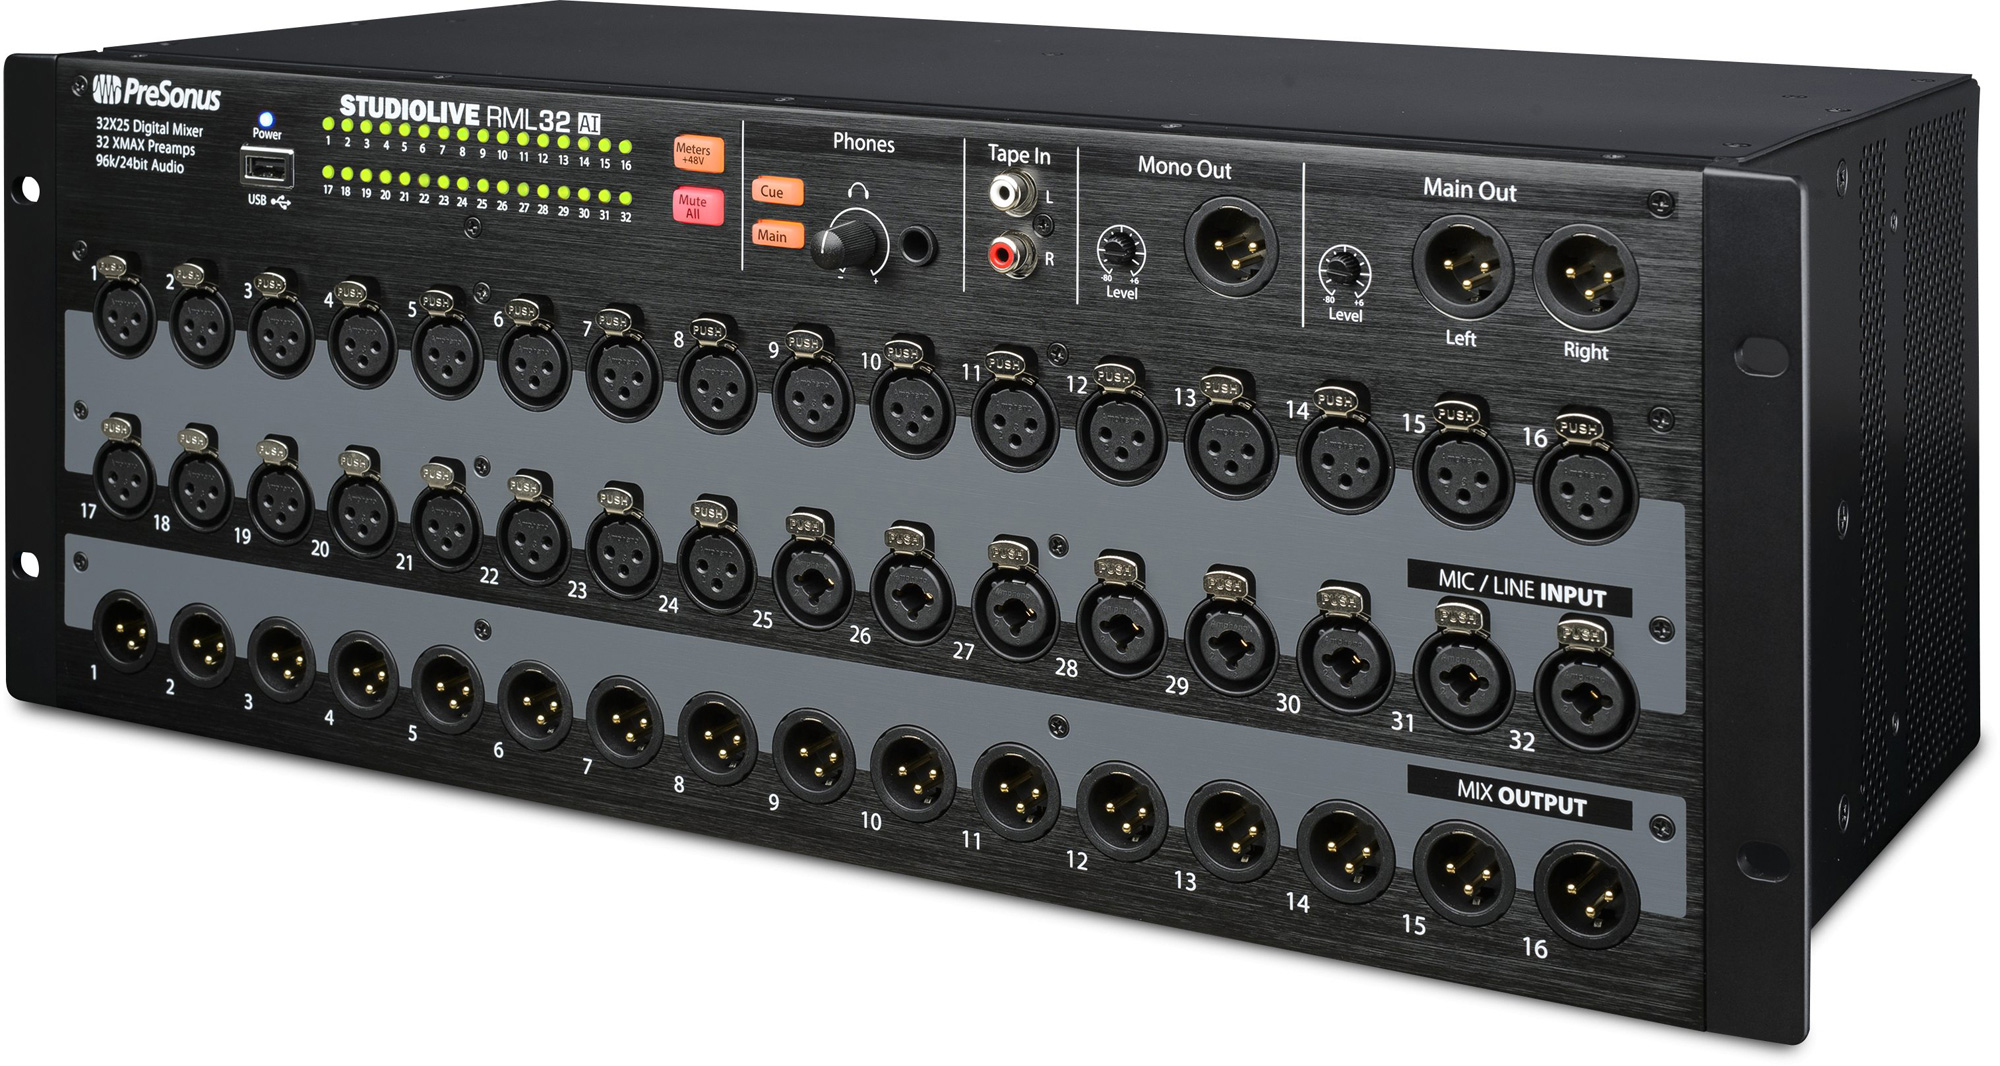 presonus studiolive rml32 ai 32 channel rack mount digital mixer with 16 remote xmax preamps. Black Bedroom Furniture Sets. Home Design Ideas